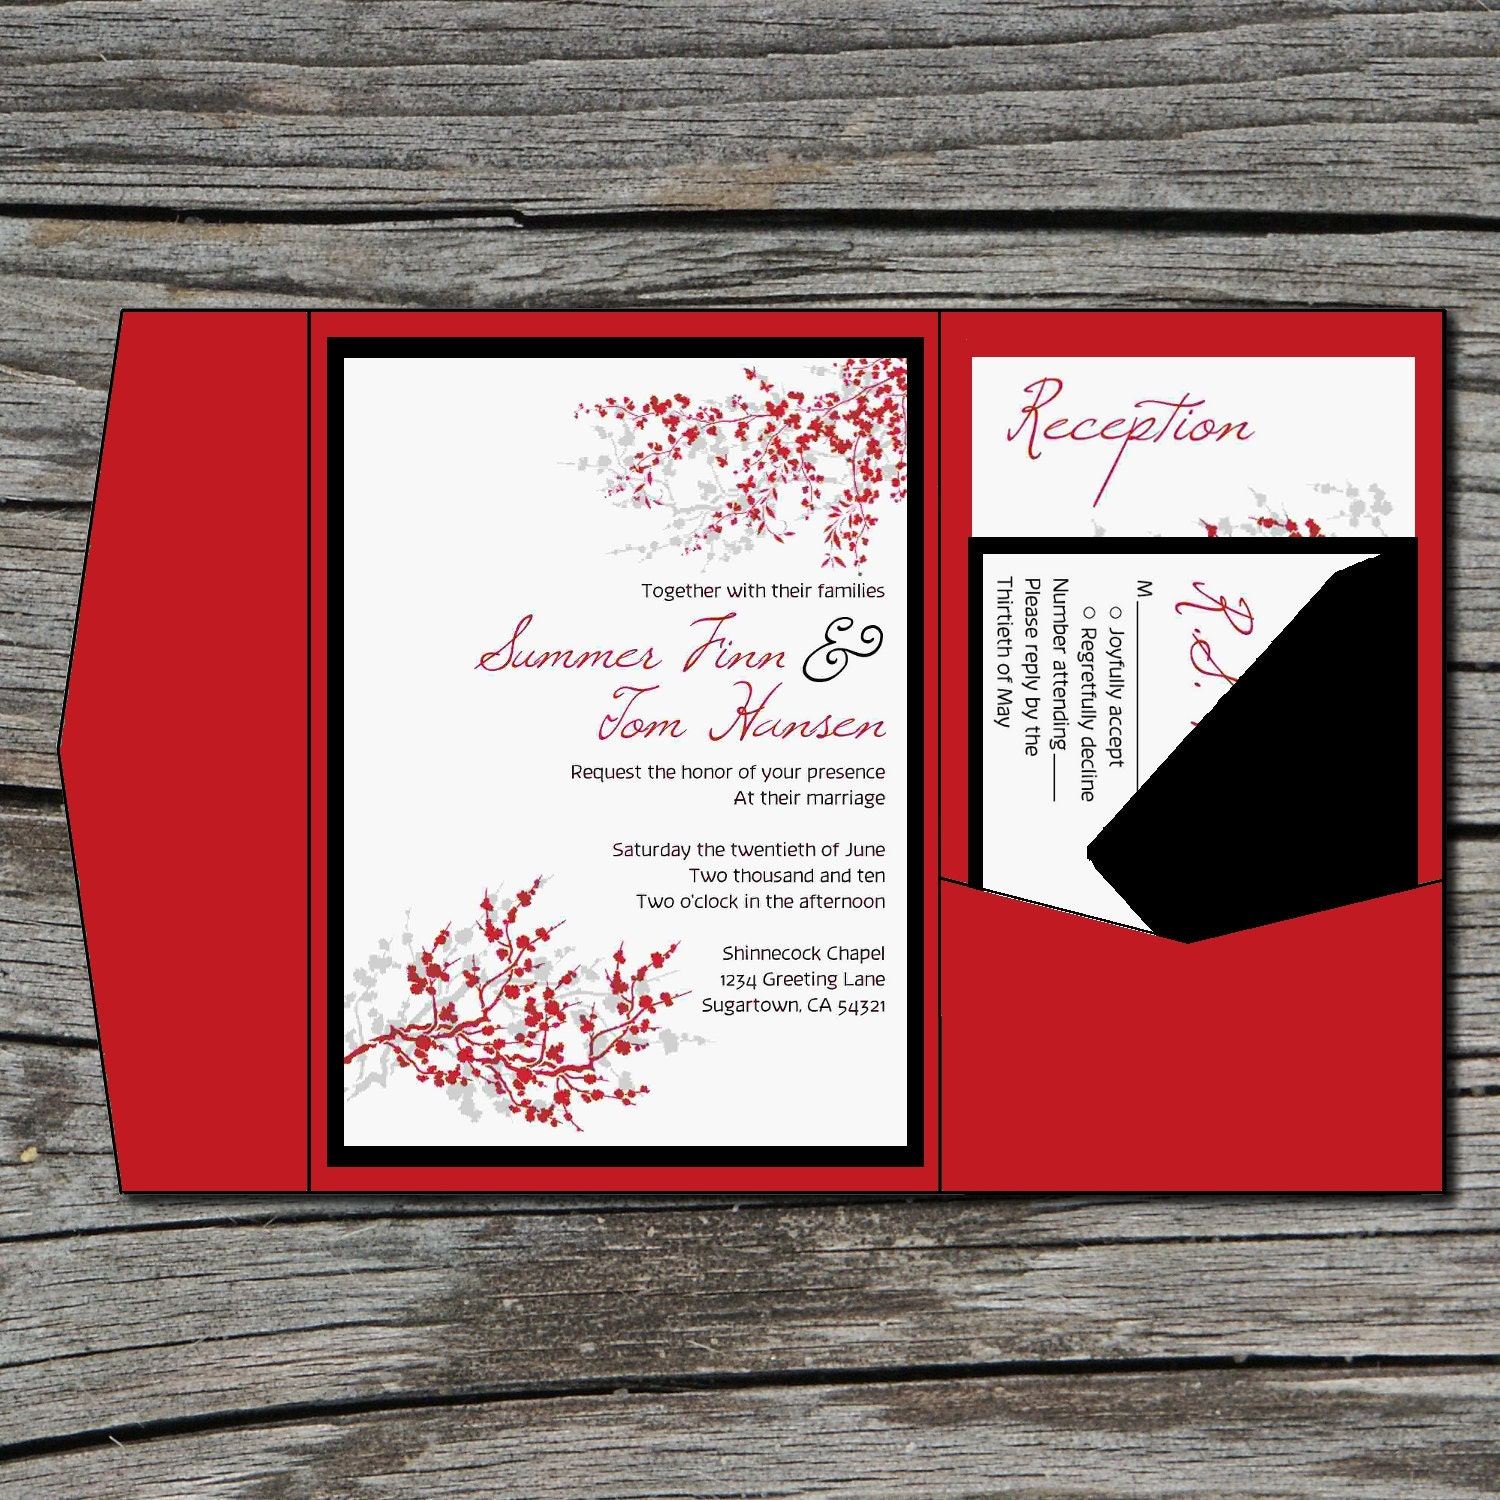 Cherry Blossom Wedding Invitations is an amazing ideas you had to choose for invitation design